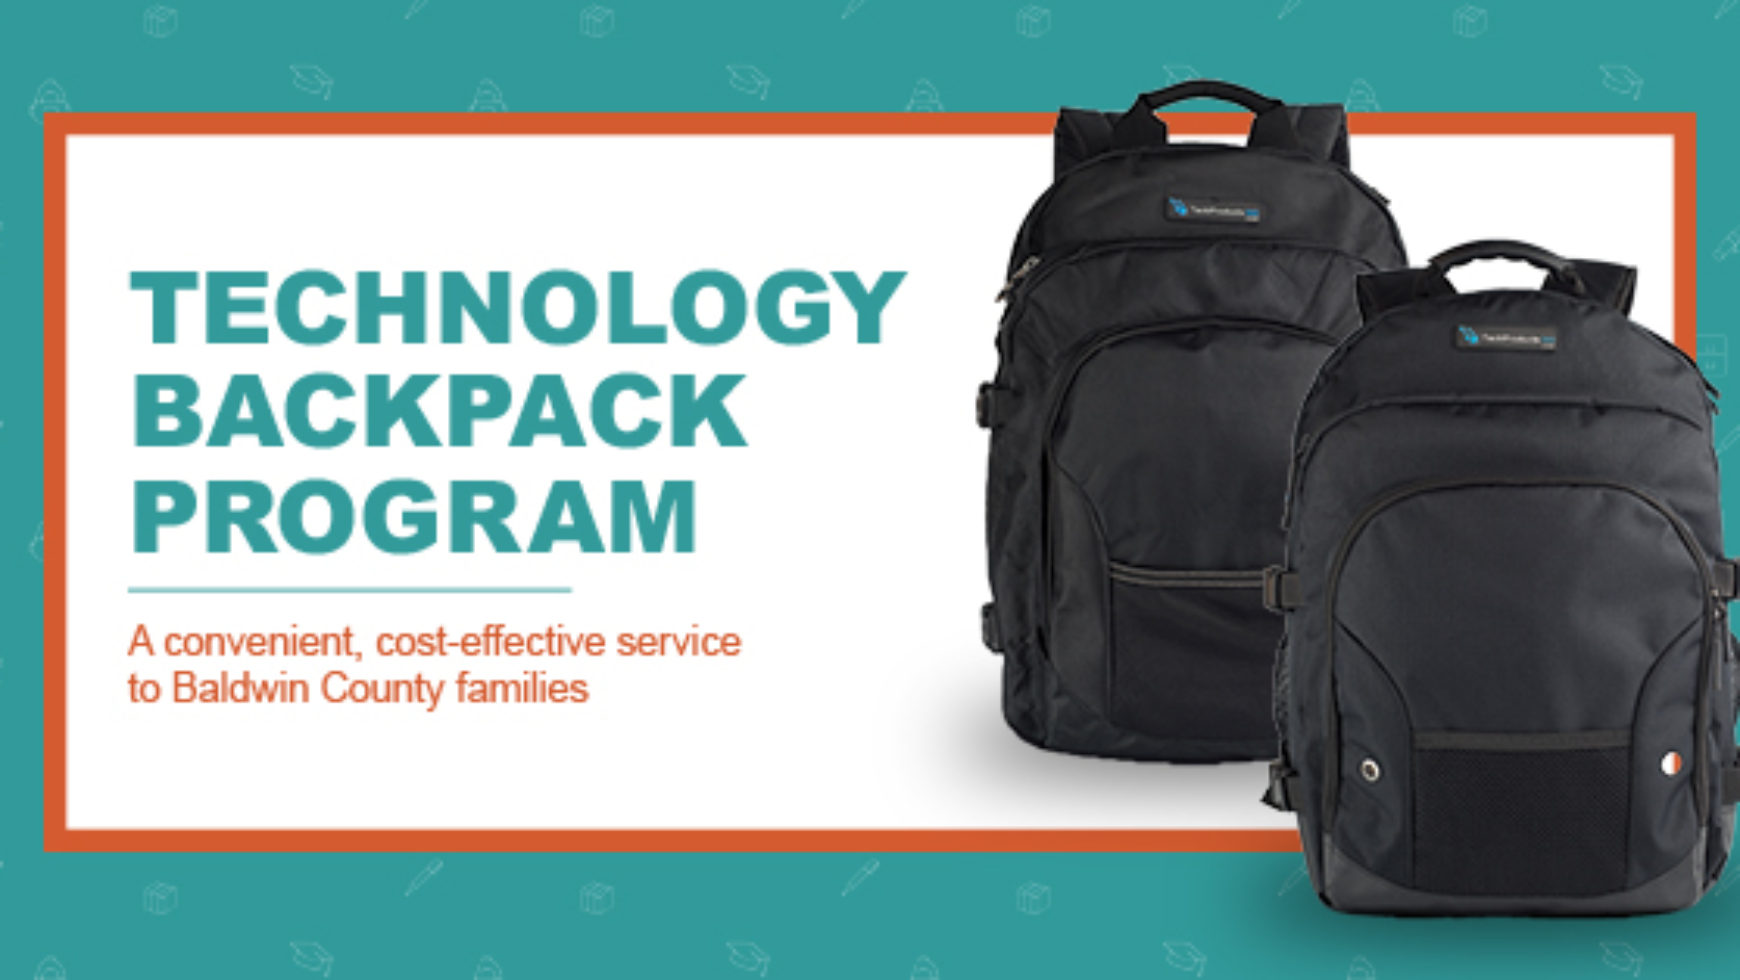 Technology Backpack Program